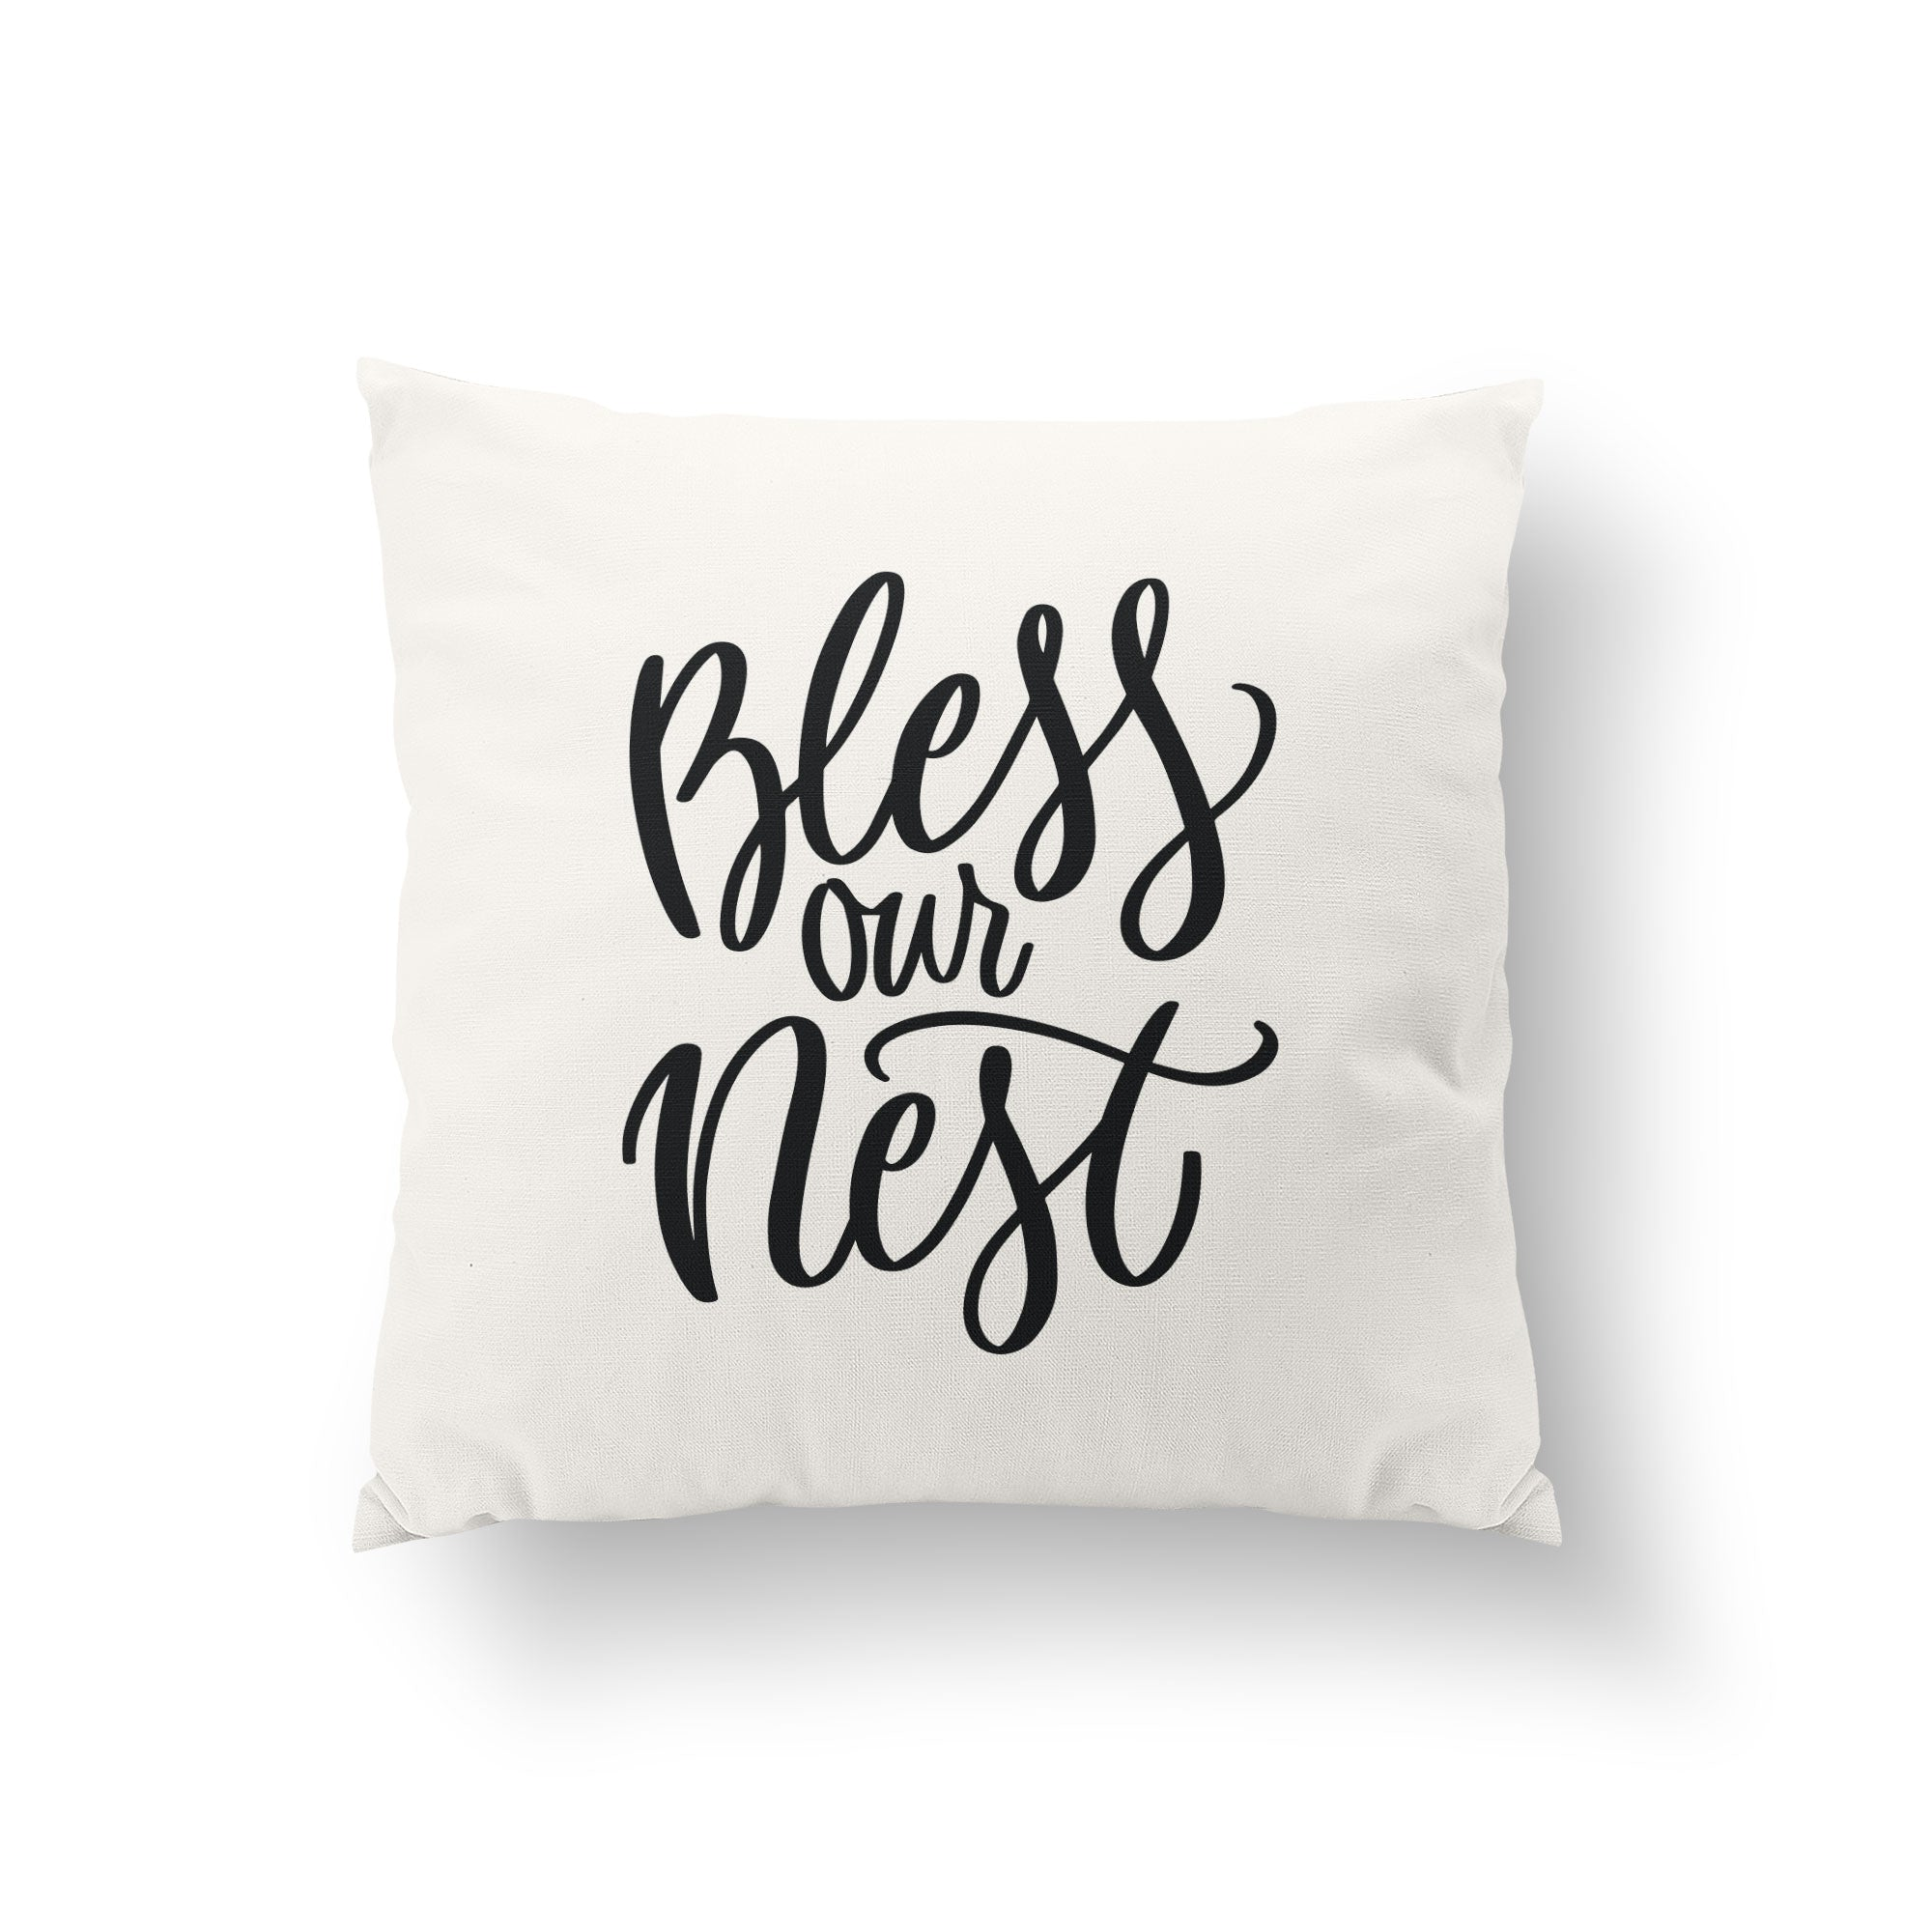 Bless Our Nest Throw Pillow